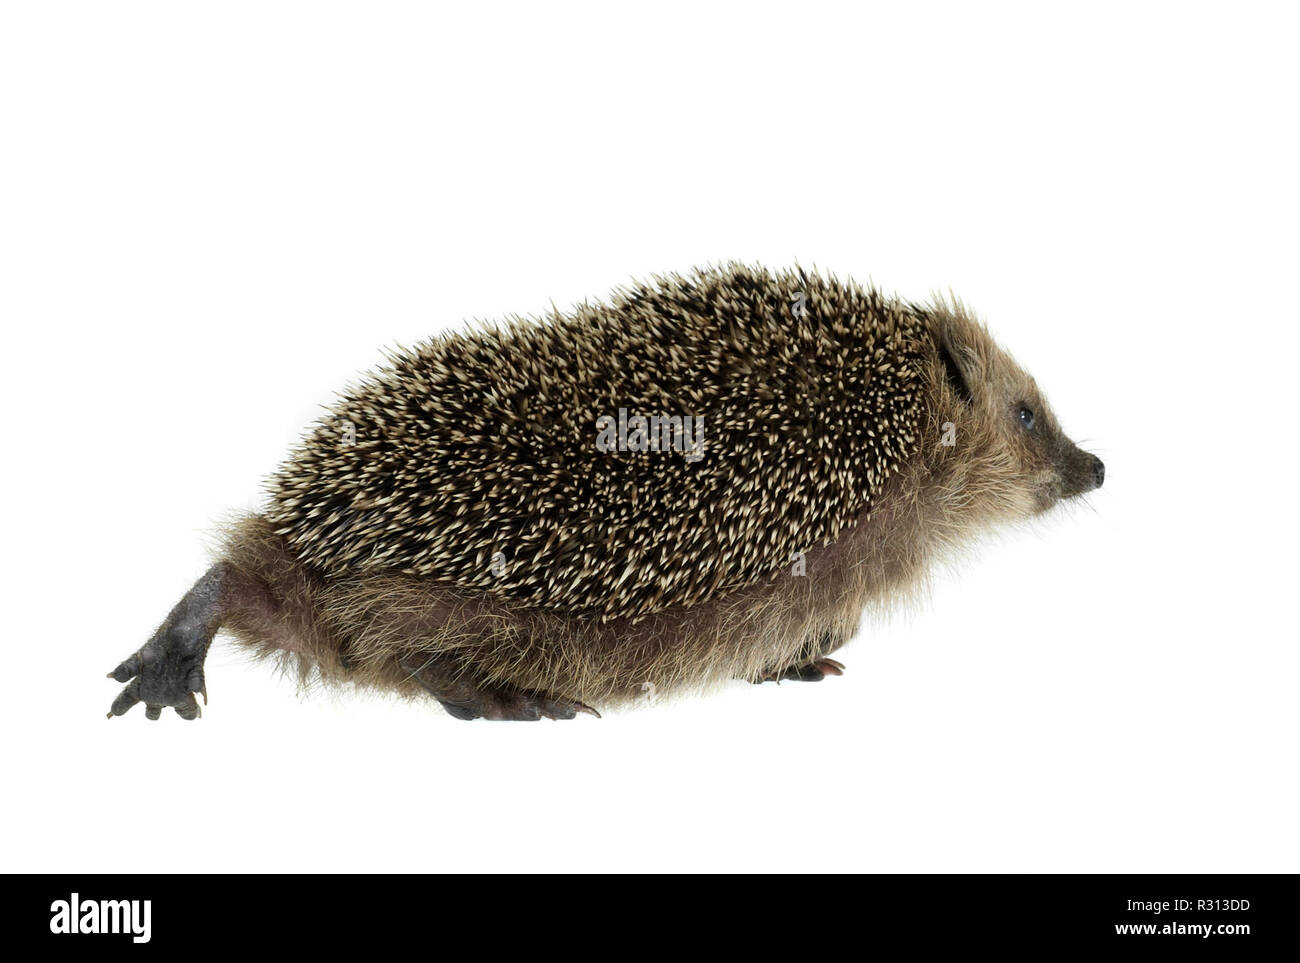 walking hedgehog in white back - Stock Image